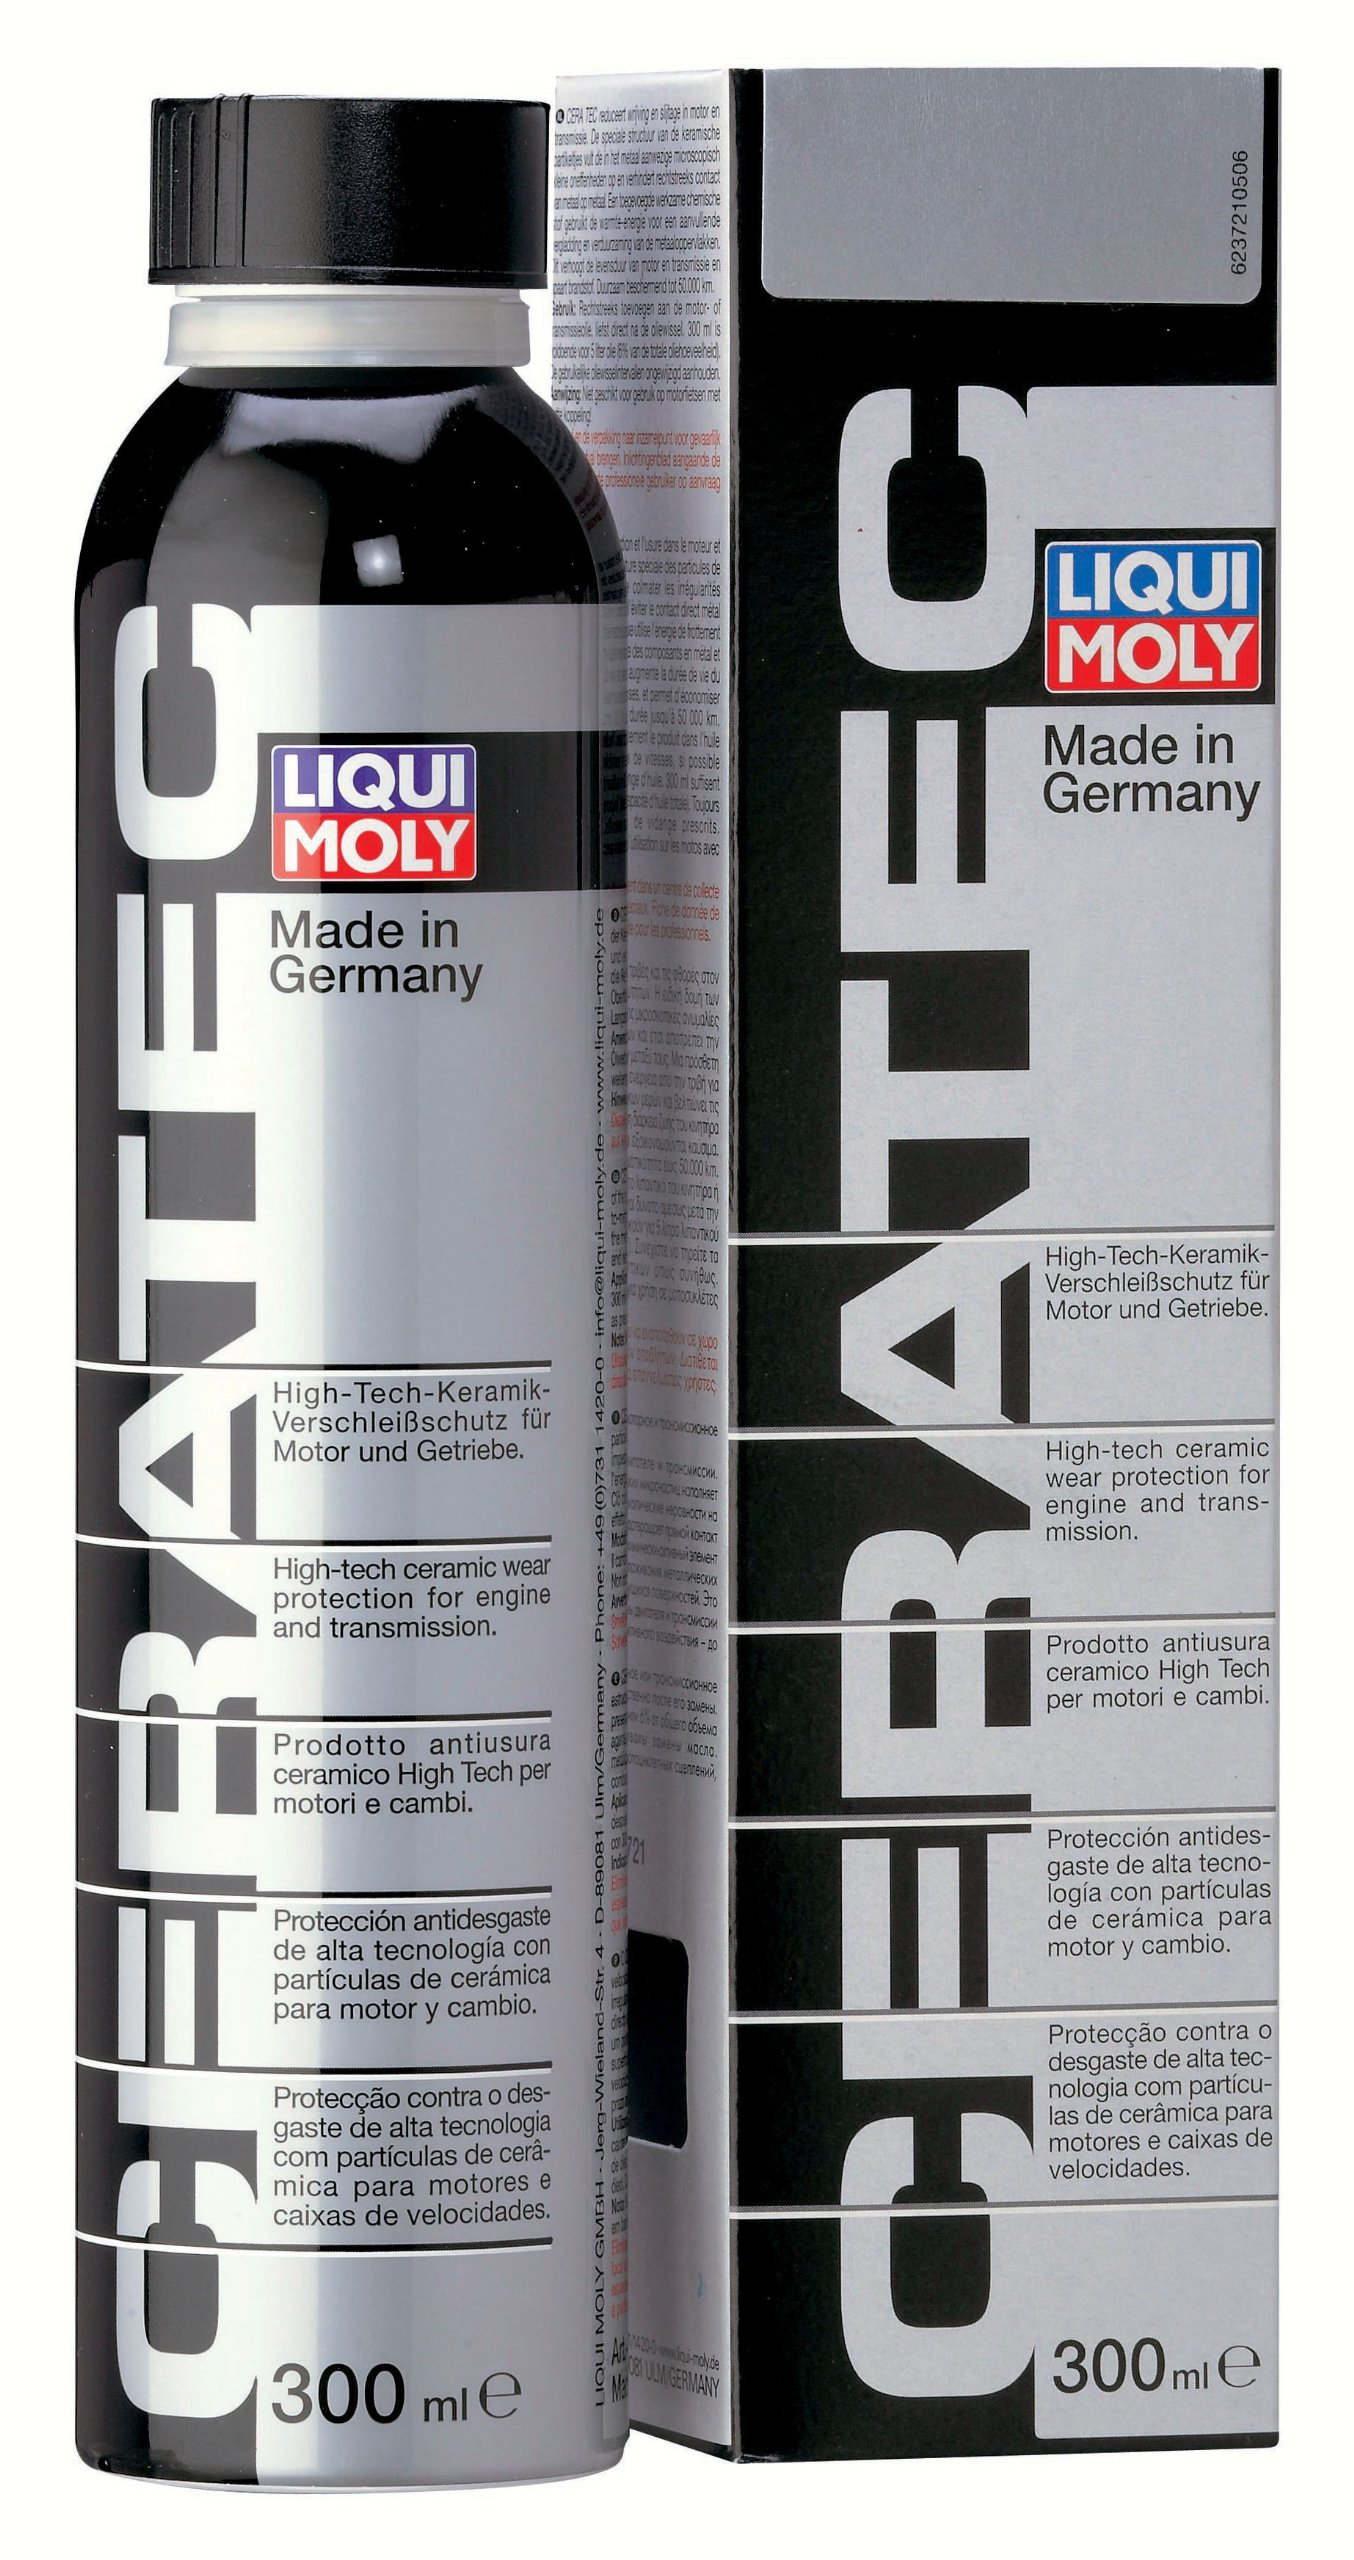 Liqui Moly (20002) Cera Tec Friction Modifier - 300 ml product image